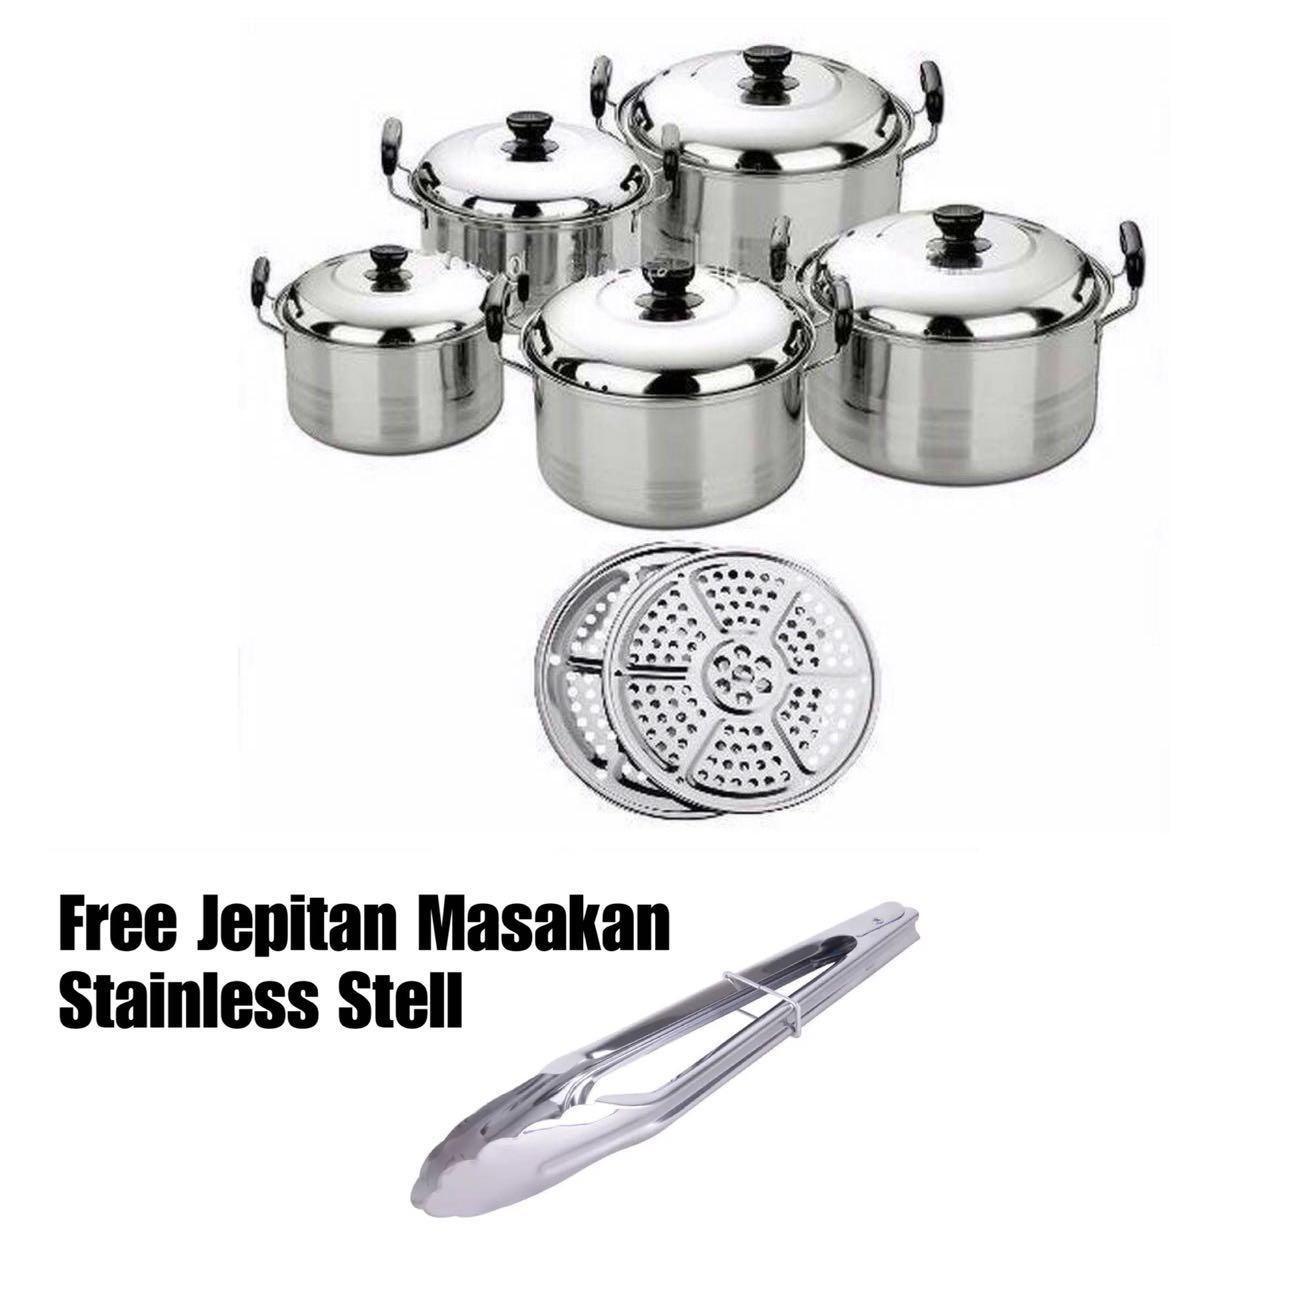 Kingko America High Pots Panci Set 5 in 1 + Kukusan -Steamer - Langseng BONUS Jepitan  Stainless Steel